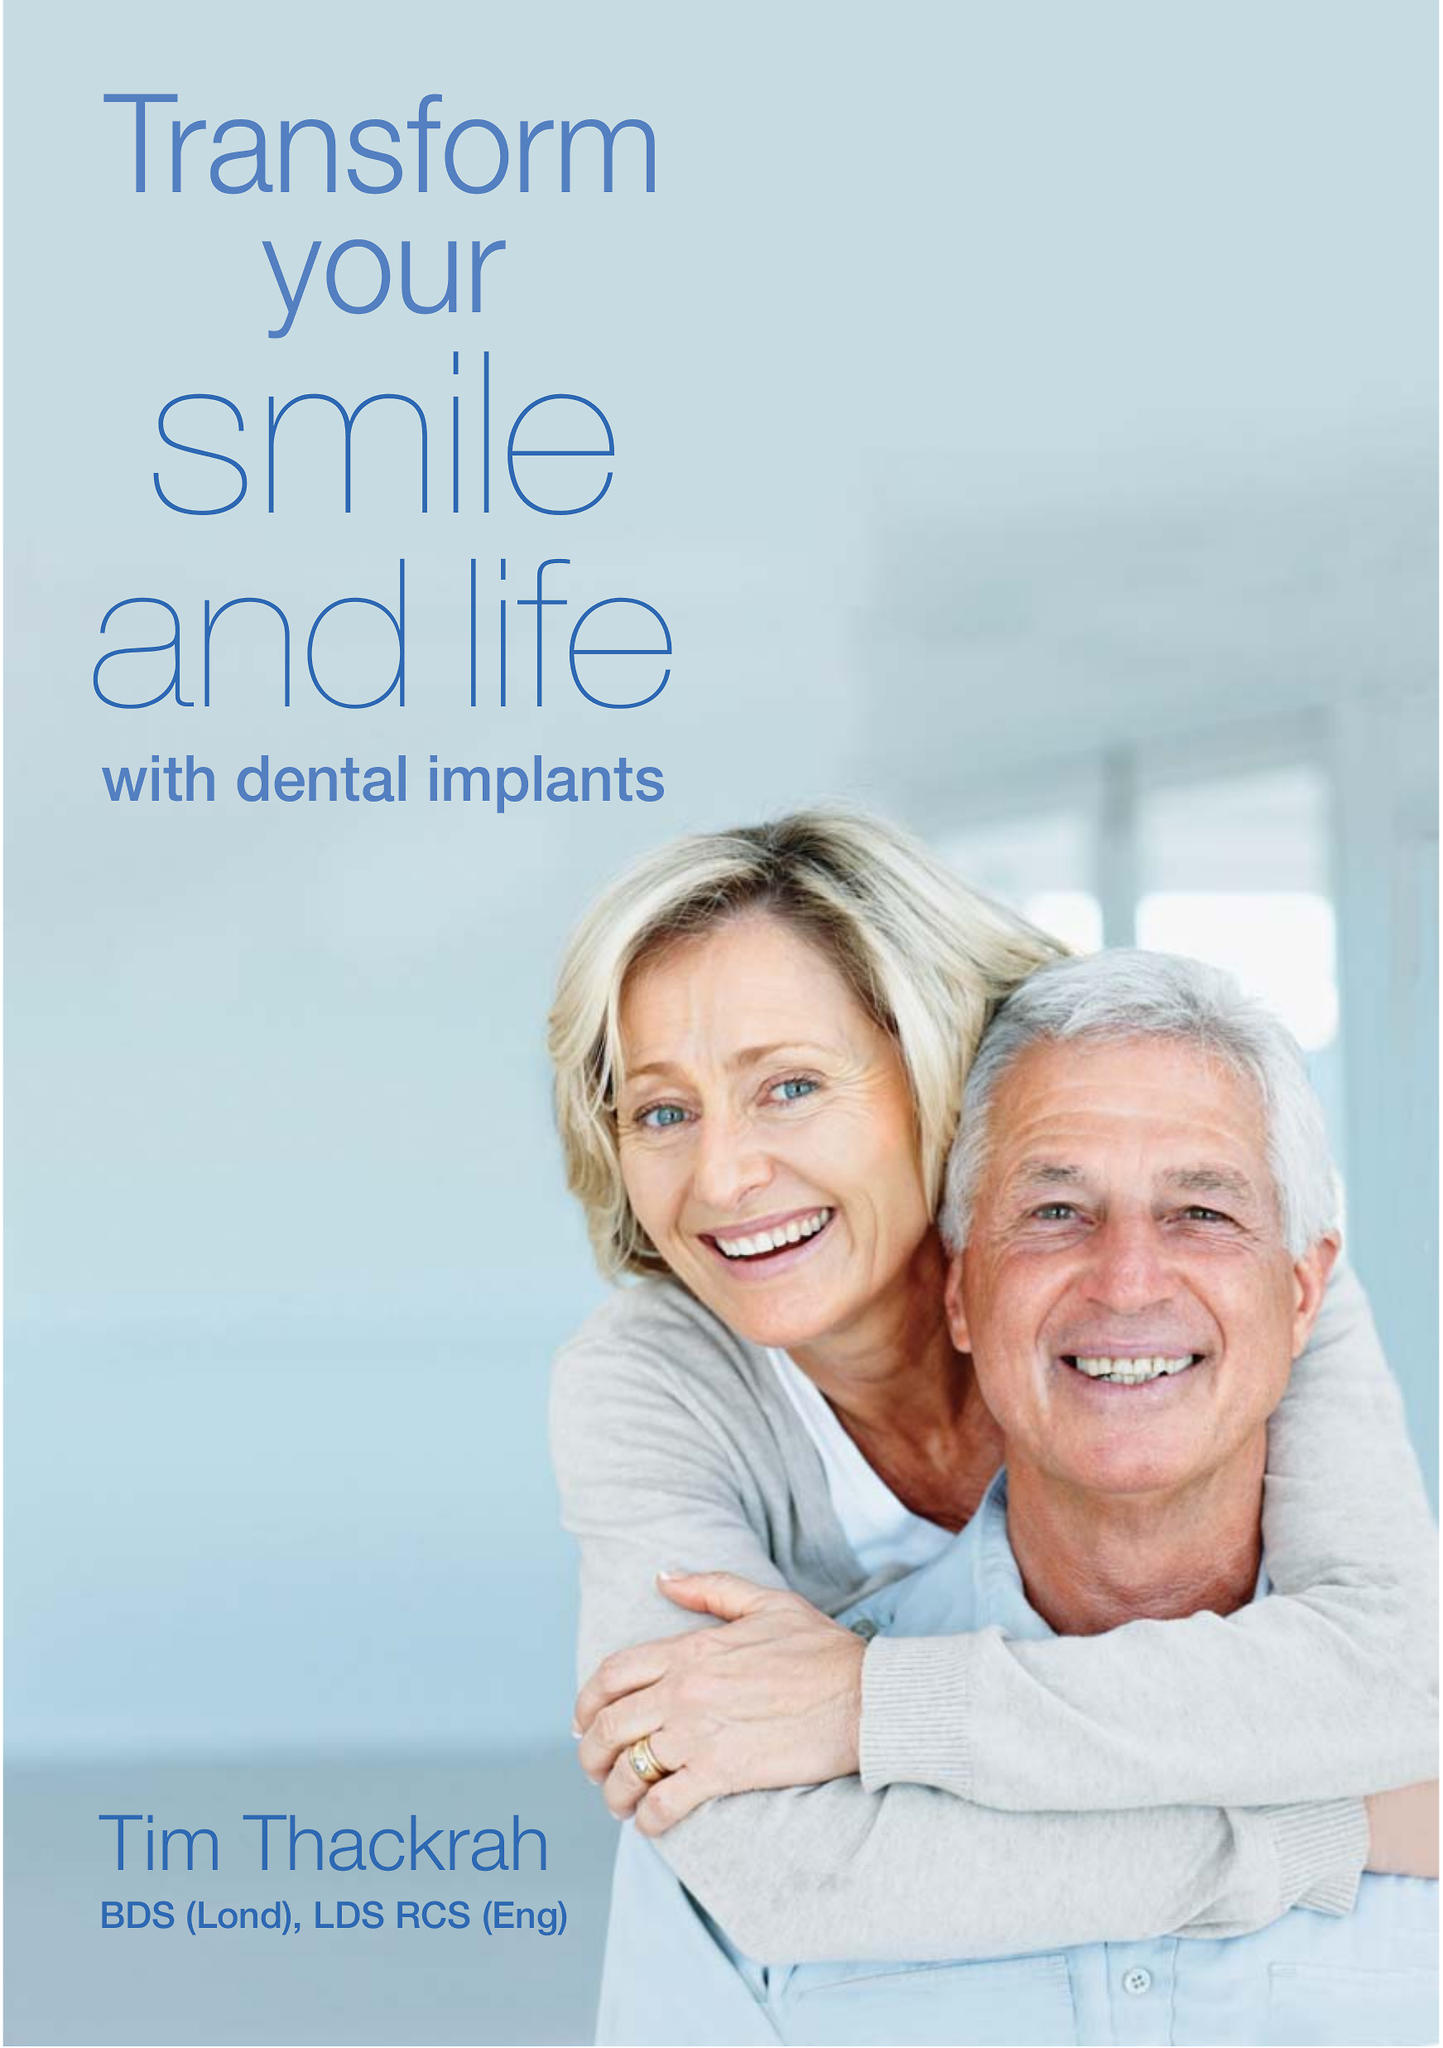 Transform your smile and life with dental implants